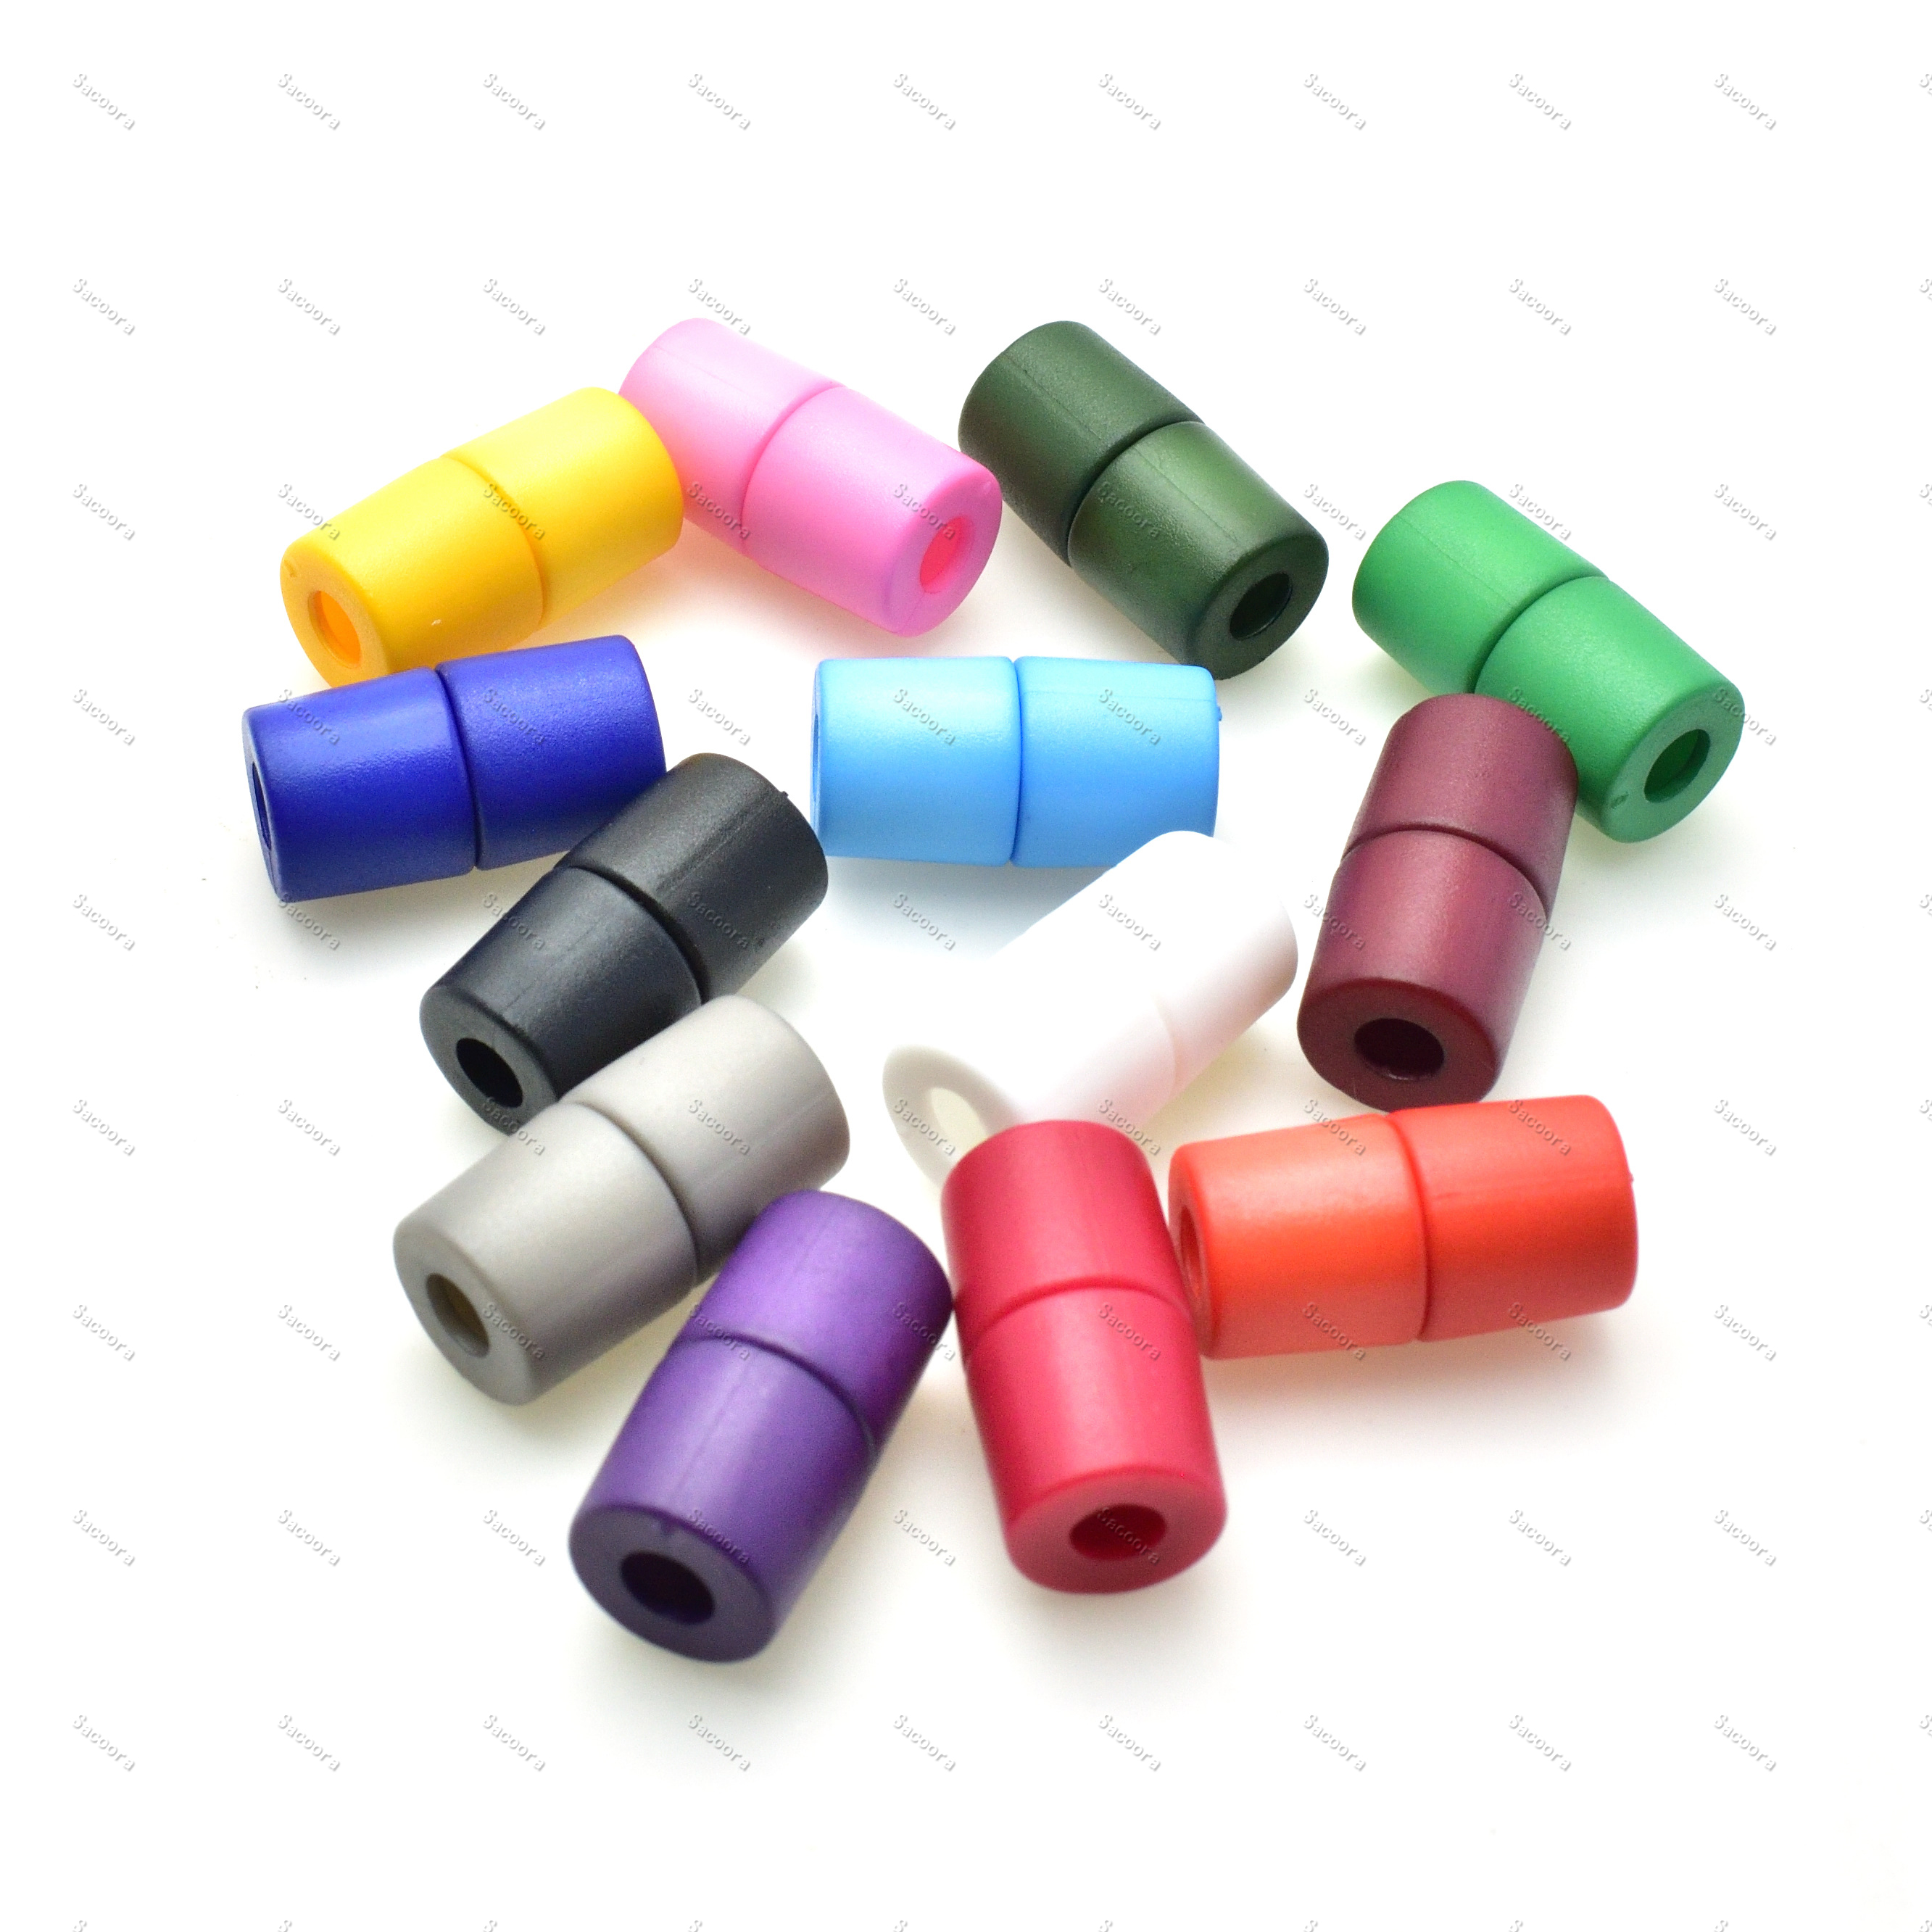 12pcs/pack Colorful Plastic Lanyard Safety Breakaway Pop Barrel Connectors For Bag/Pet Collars/Paracords/Necklace